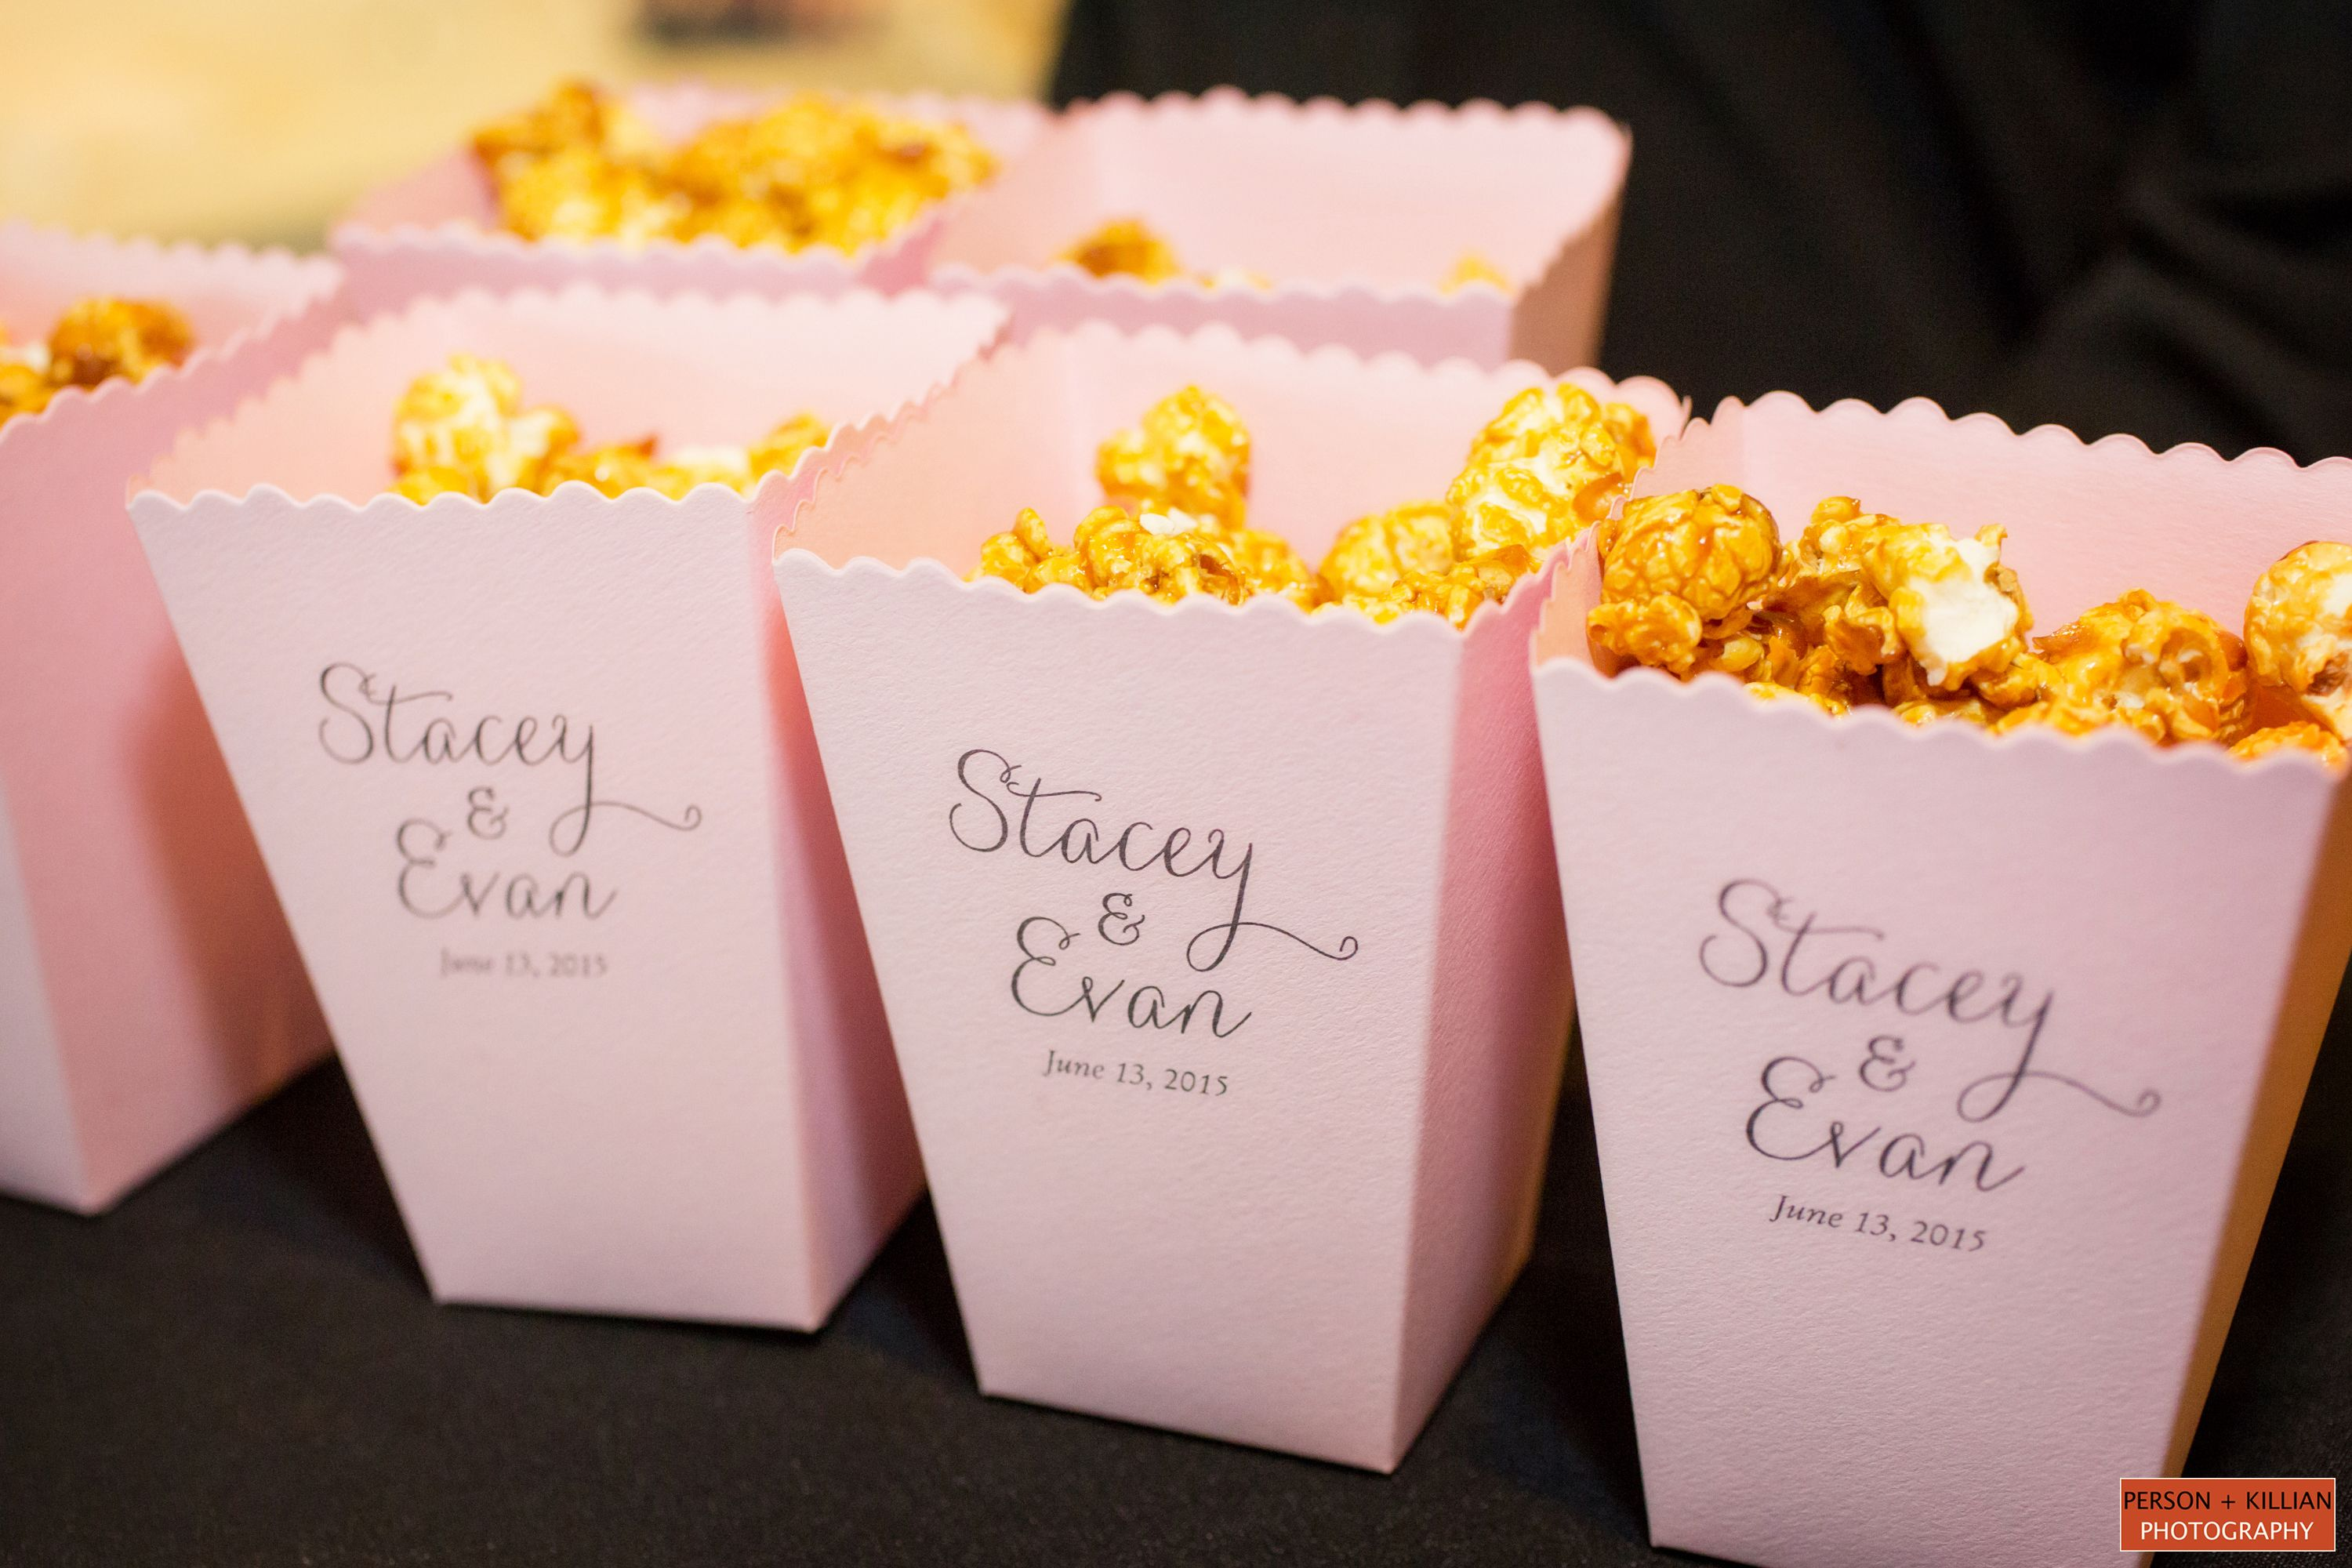 Popcorn For The Ceremony Fun Wedding Favor Inspiration Boston